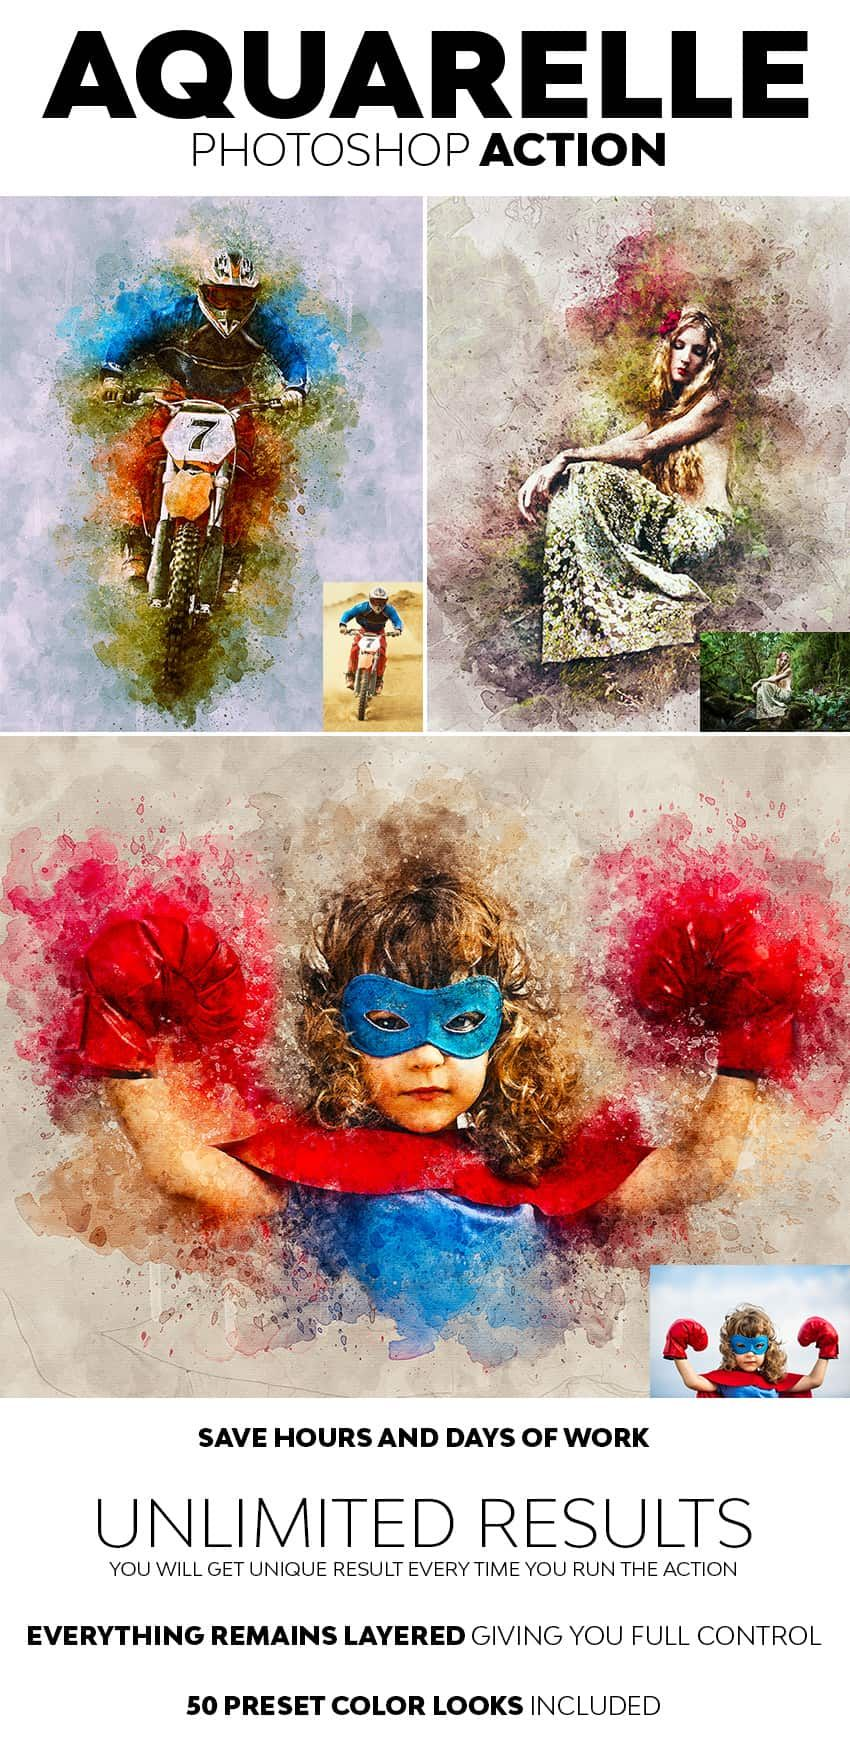 Aquarelle Photoshop Action Watercolor Photoshop Action